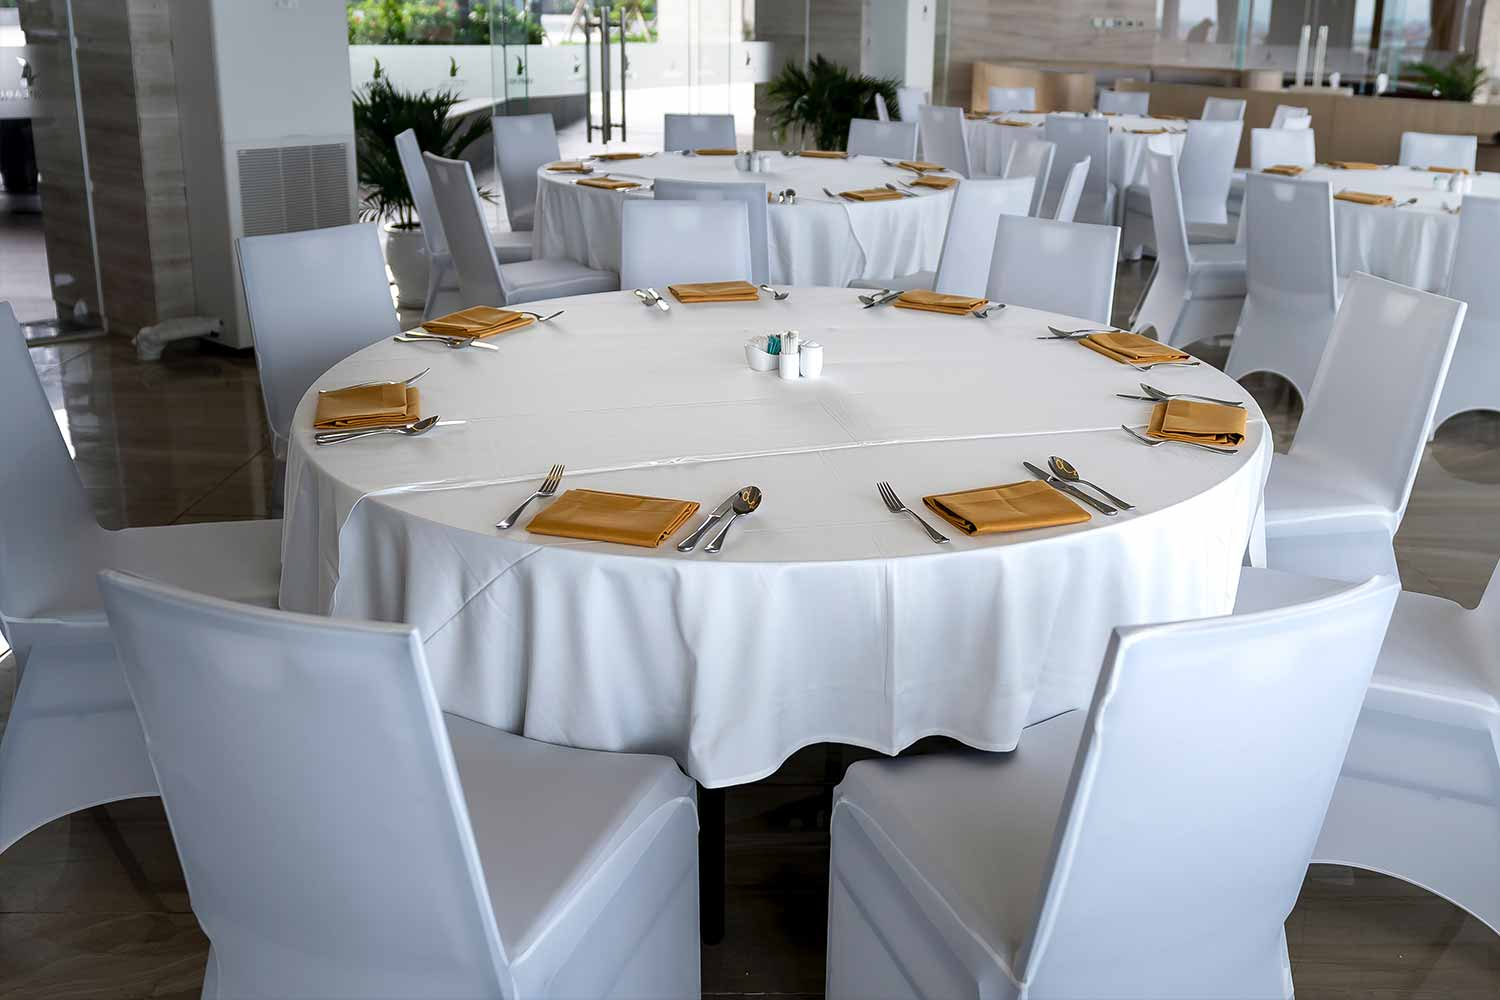 round-white-tables-with-chairs